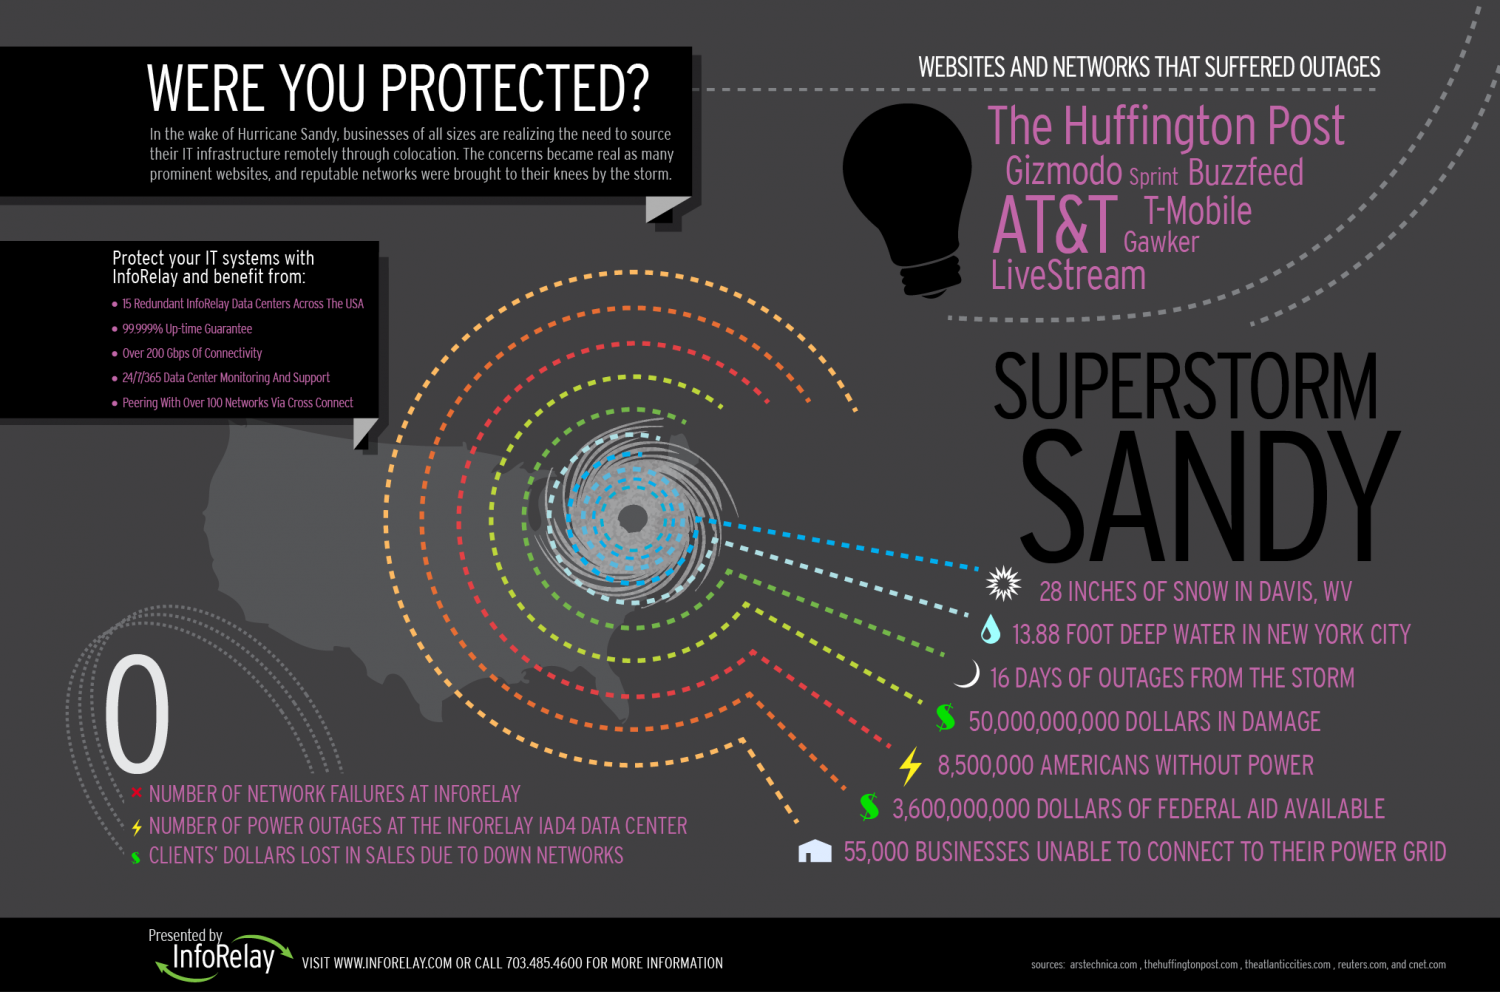 The Sandy Storm Infographic